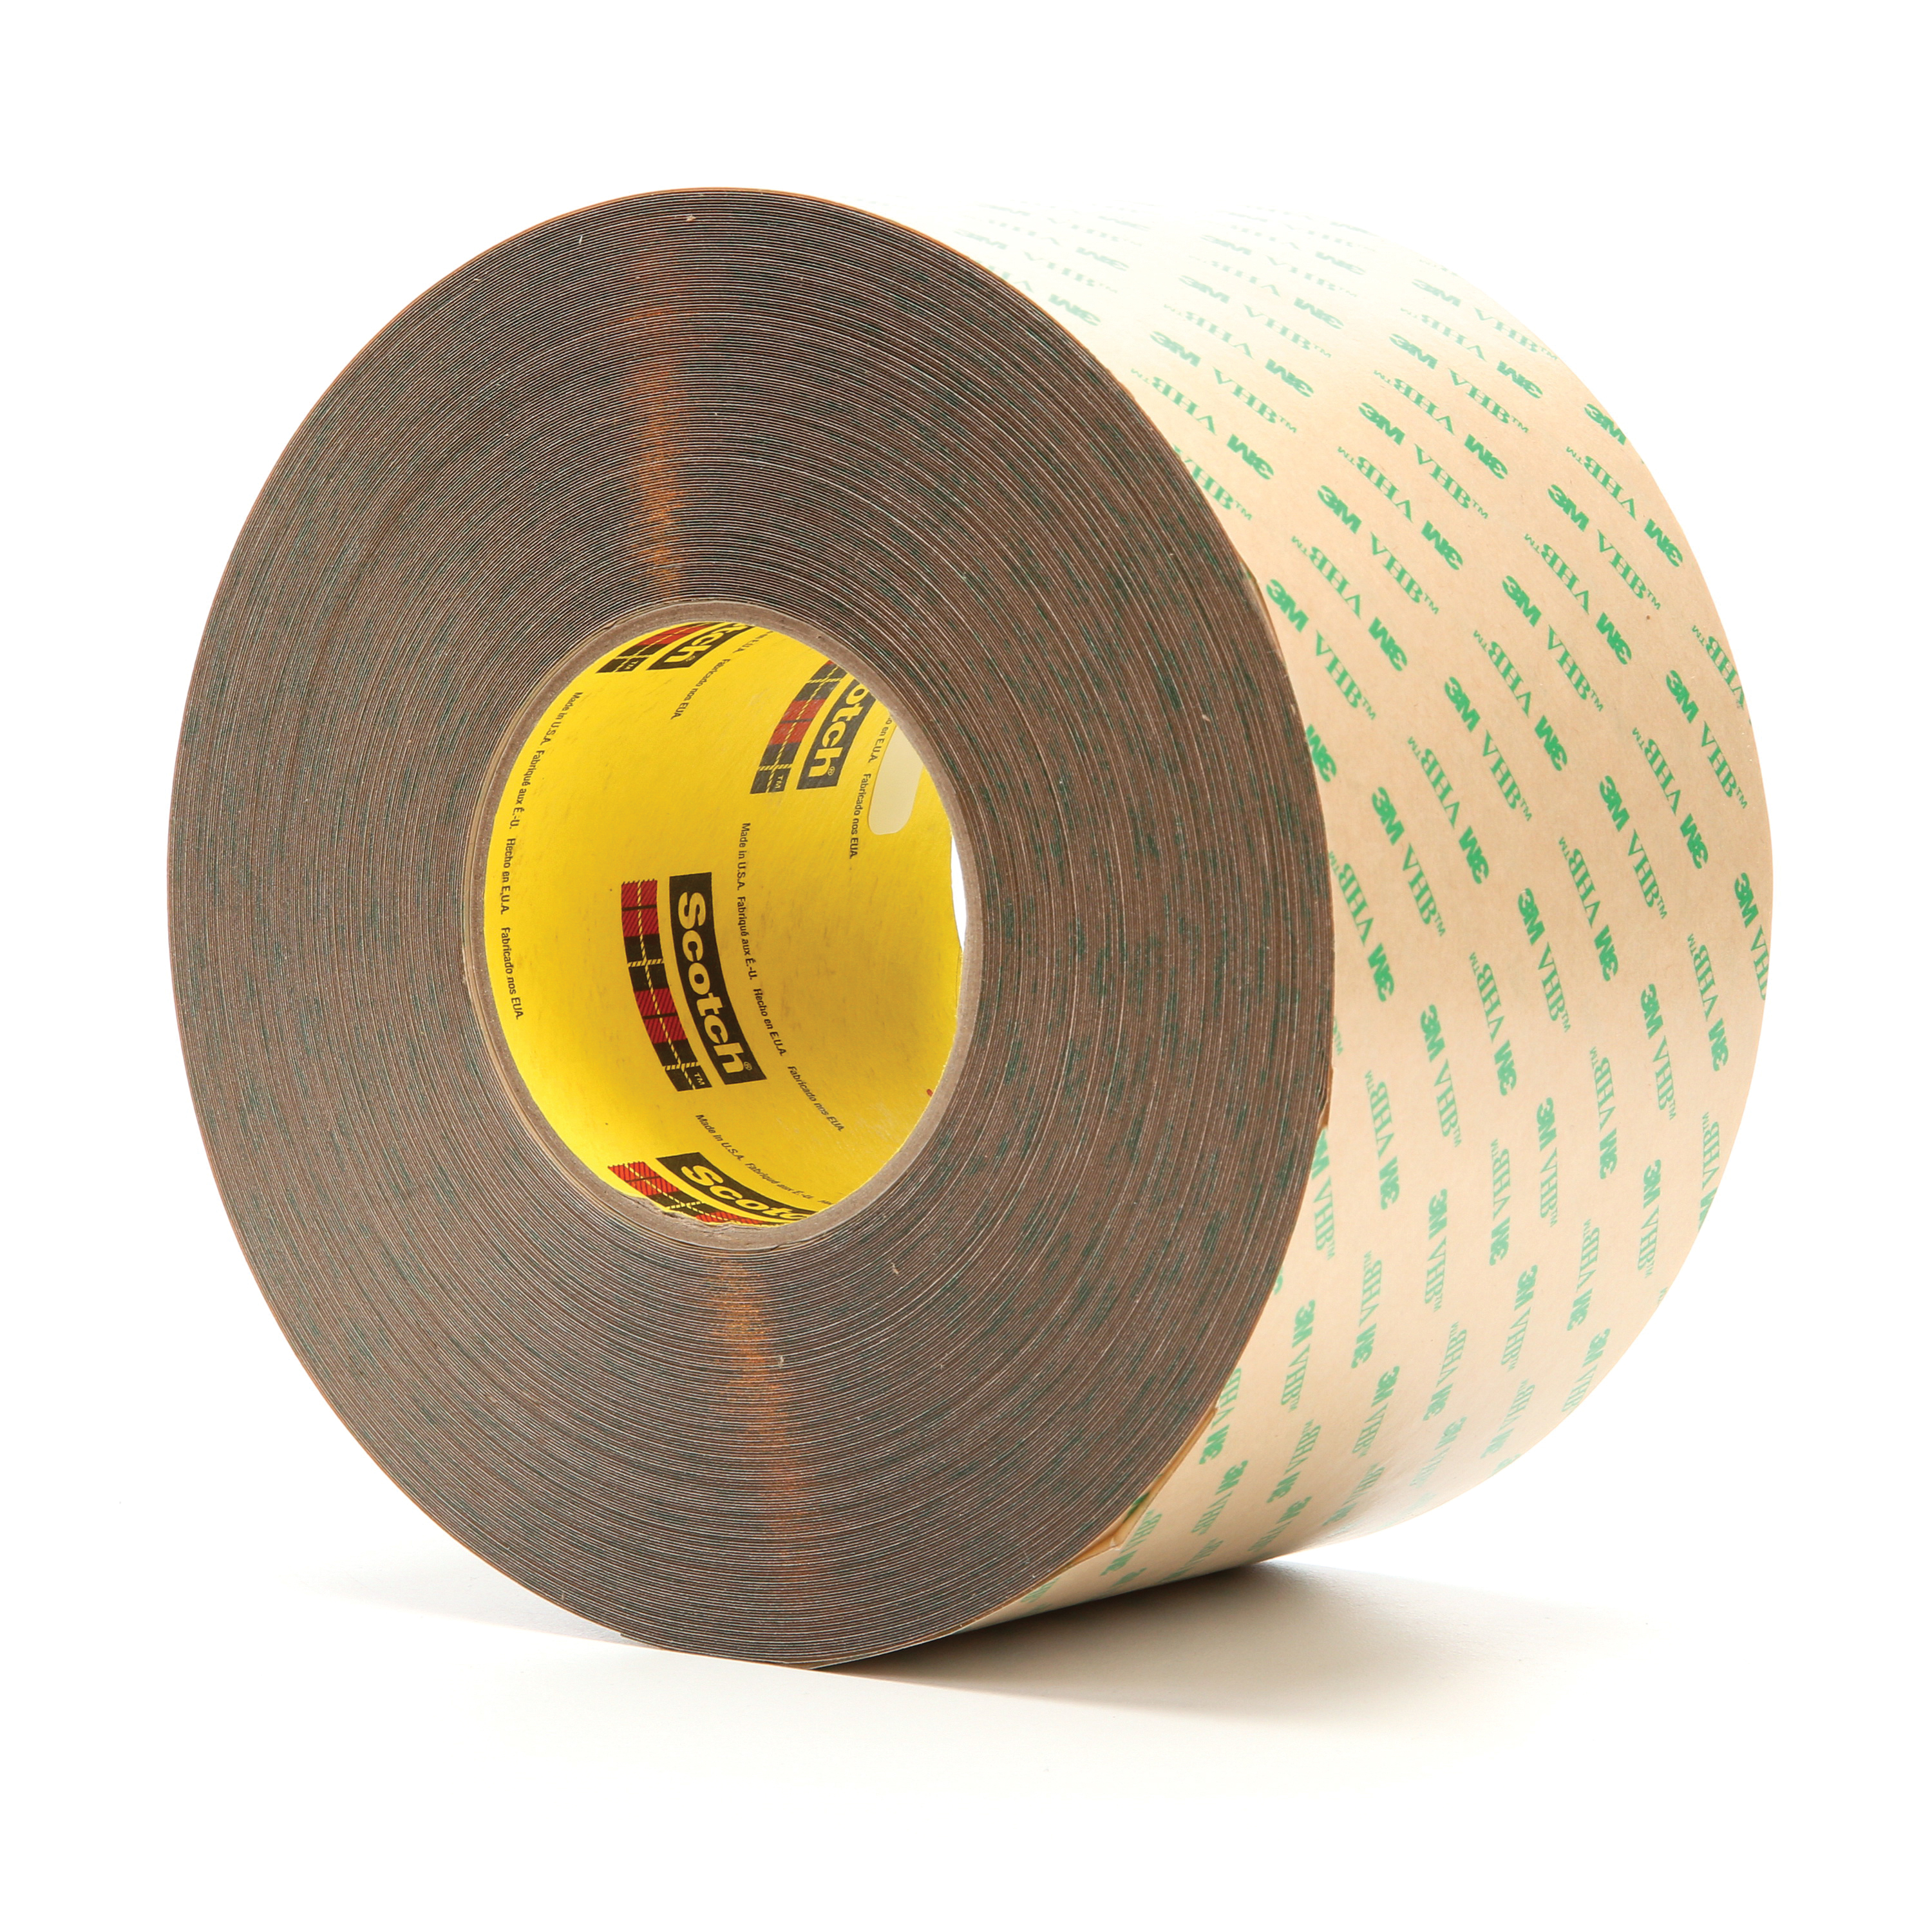 3M™ VHB™ 021200-15685 High Performance Low Tack Adhesive Transfer Tape, 60 yd L x 4 in W, 14.2 mil THK, 10 mil 100MP Acrylic Adhesive, Clear